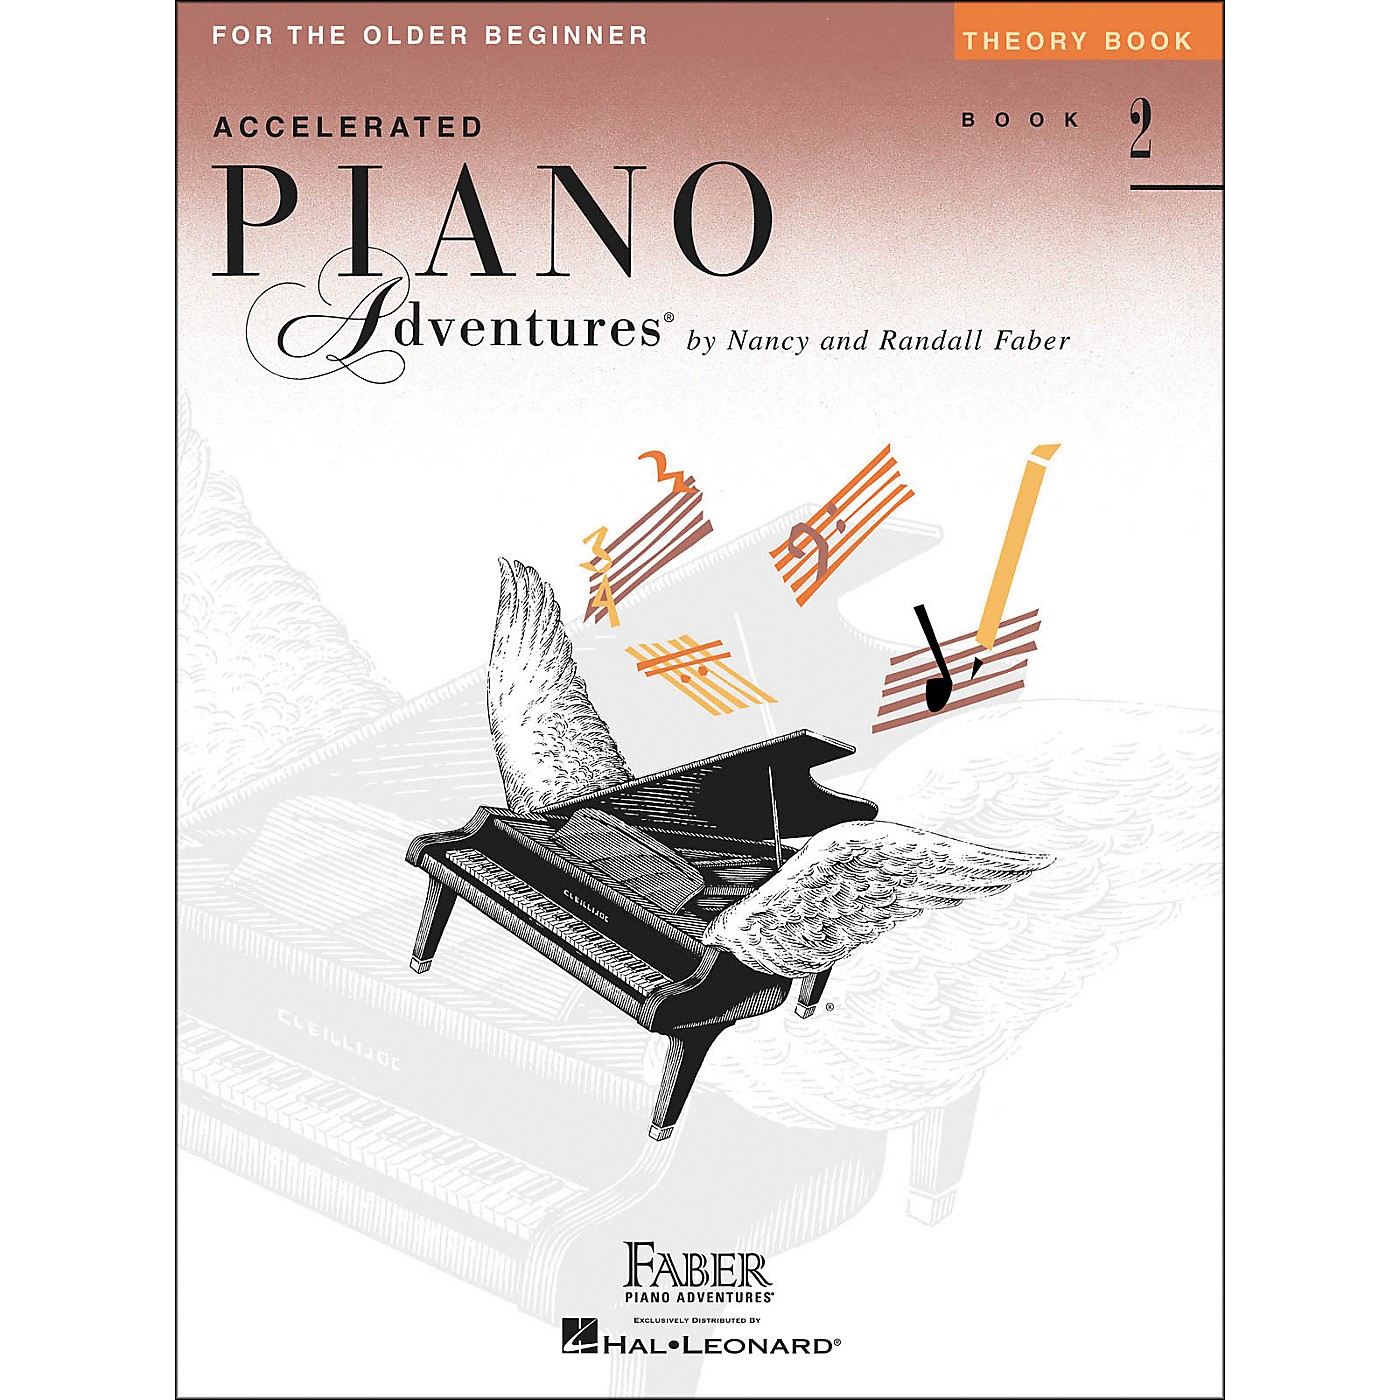 Faber Piano Adventures Accelerated Piano Adventures Theory Book for The Older Beginner Book 2 - Faber Piano thumbnail